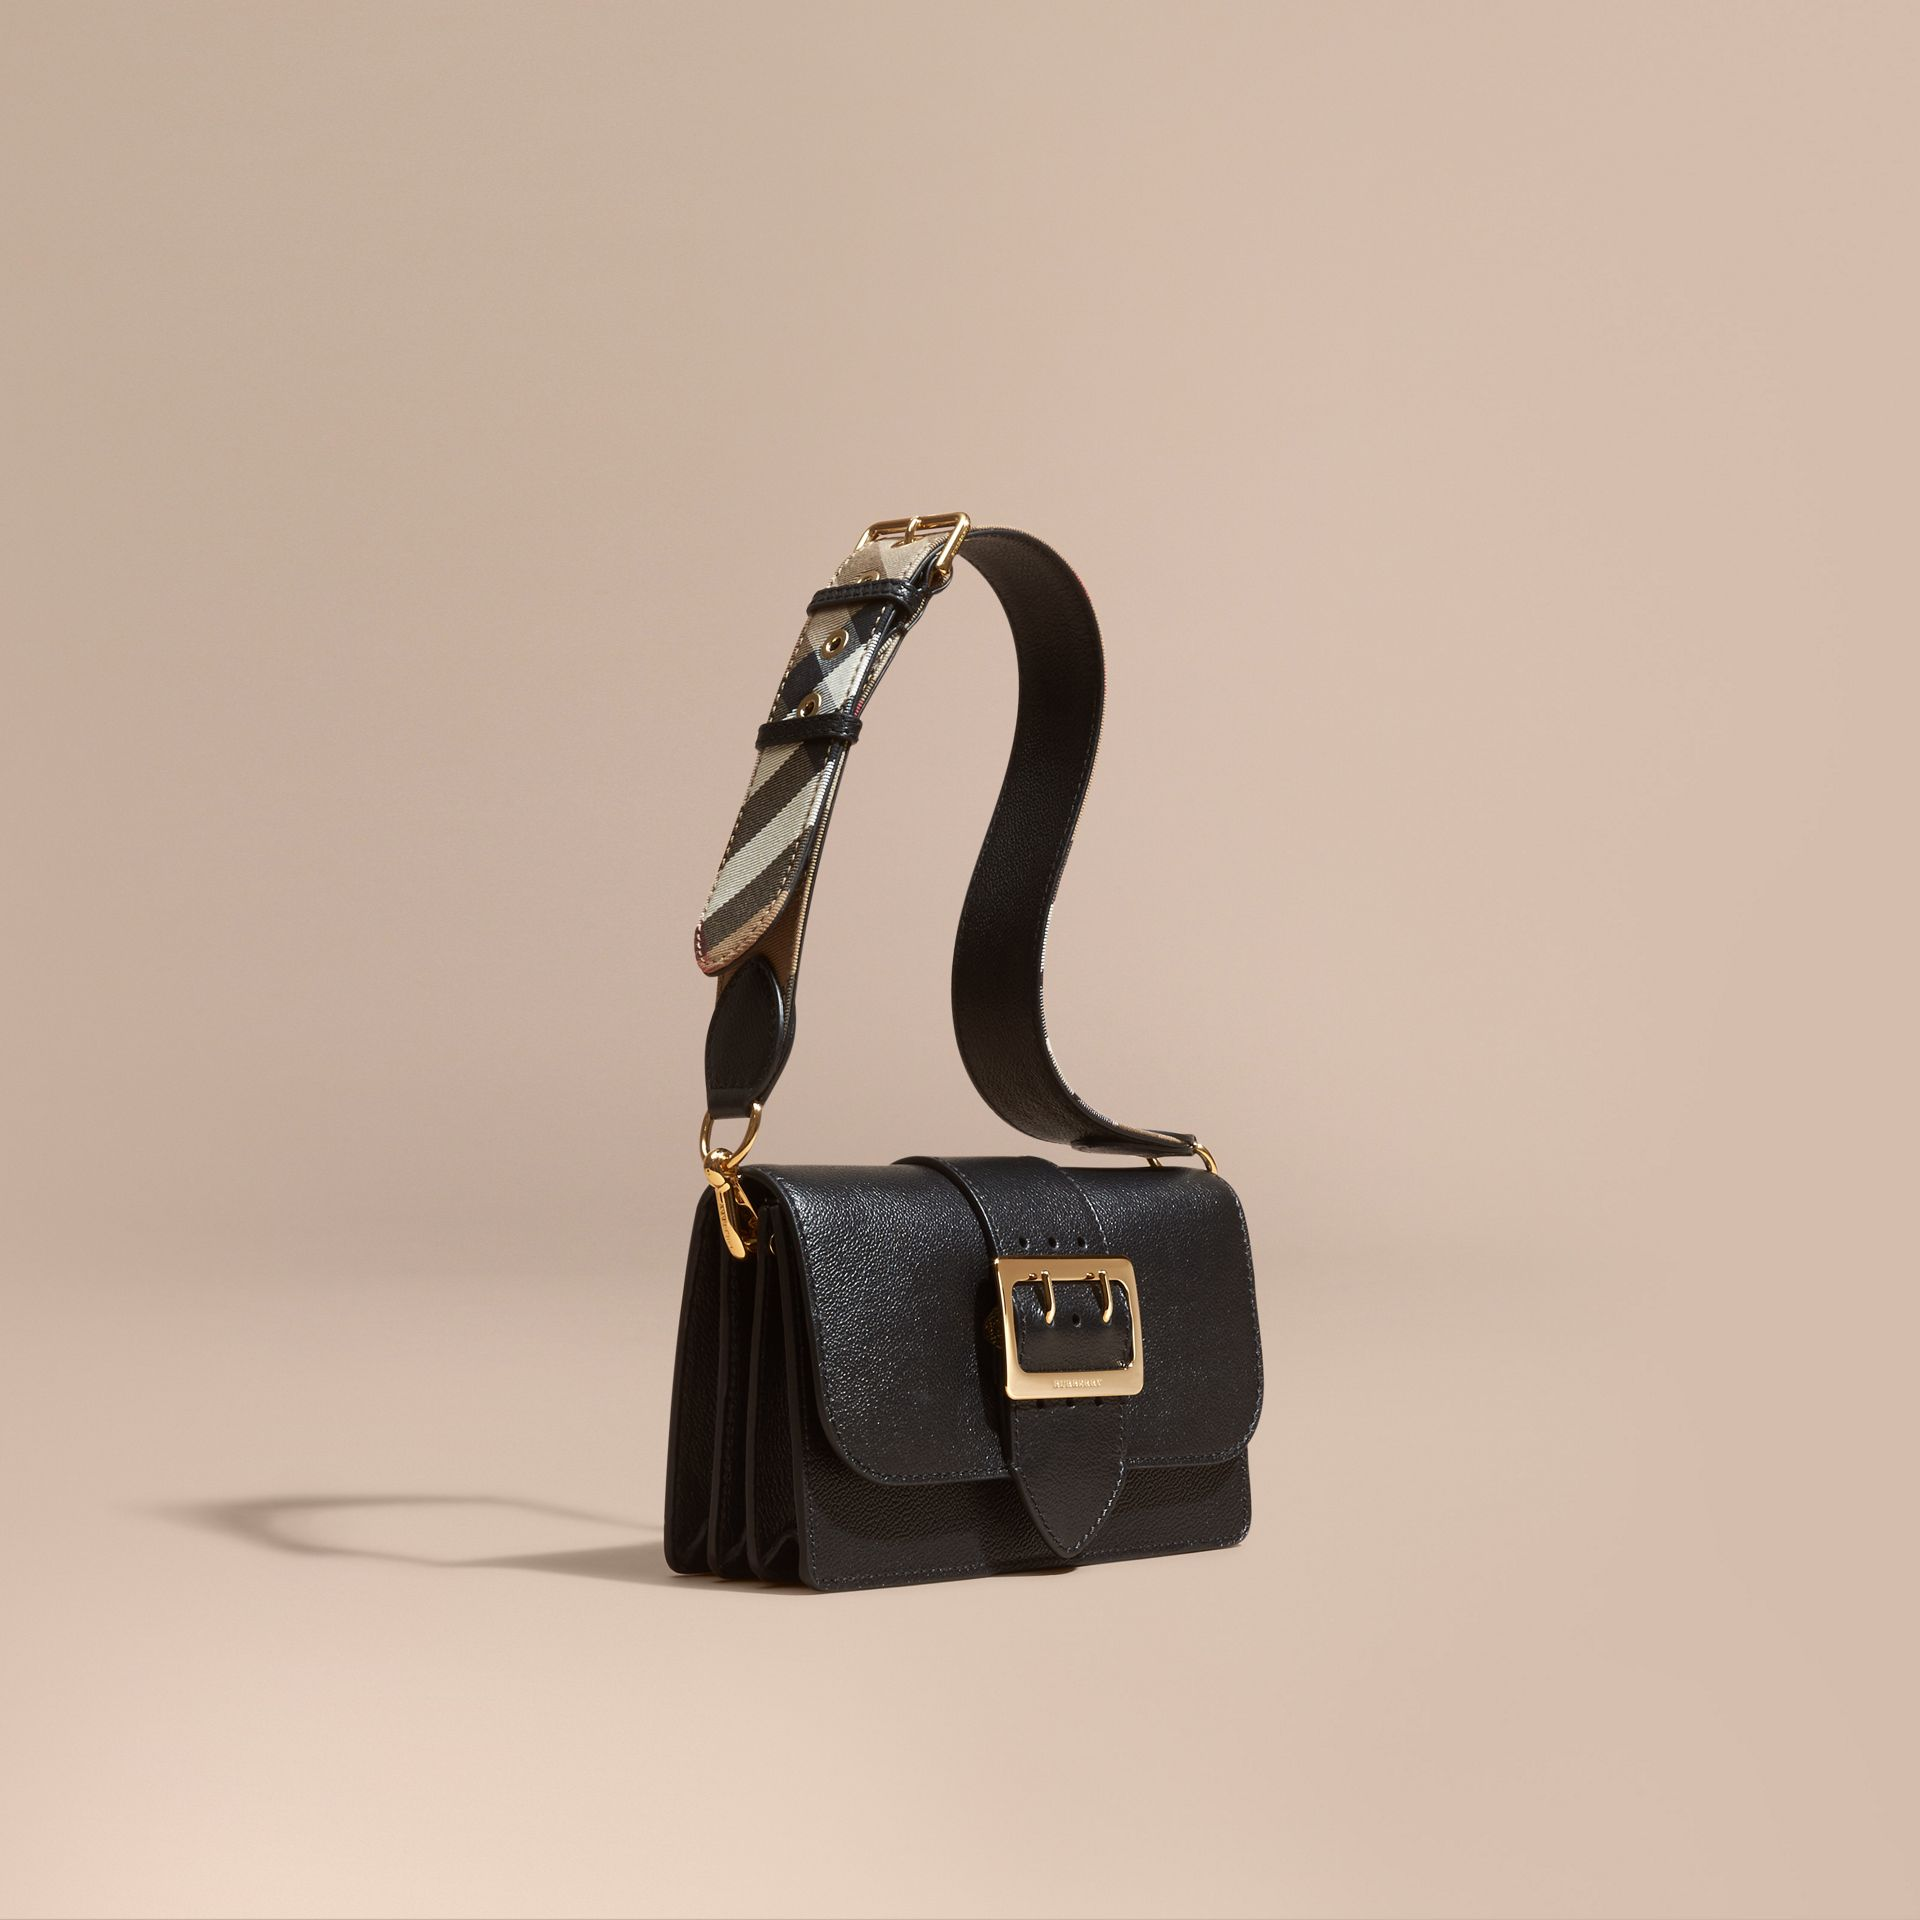 Noir Petit sac The Buckle en cuir - photo de la galerie 1